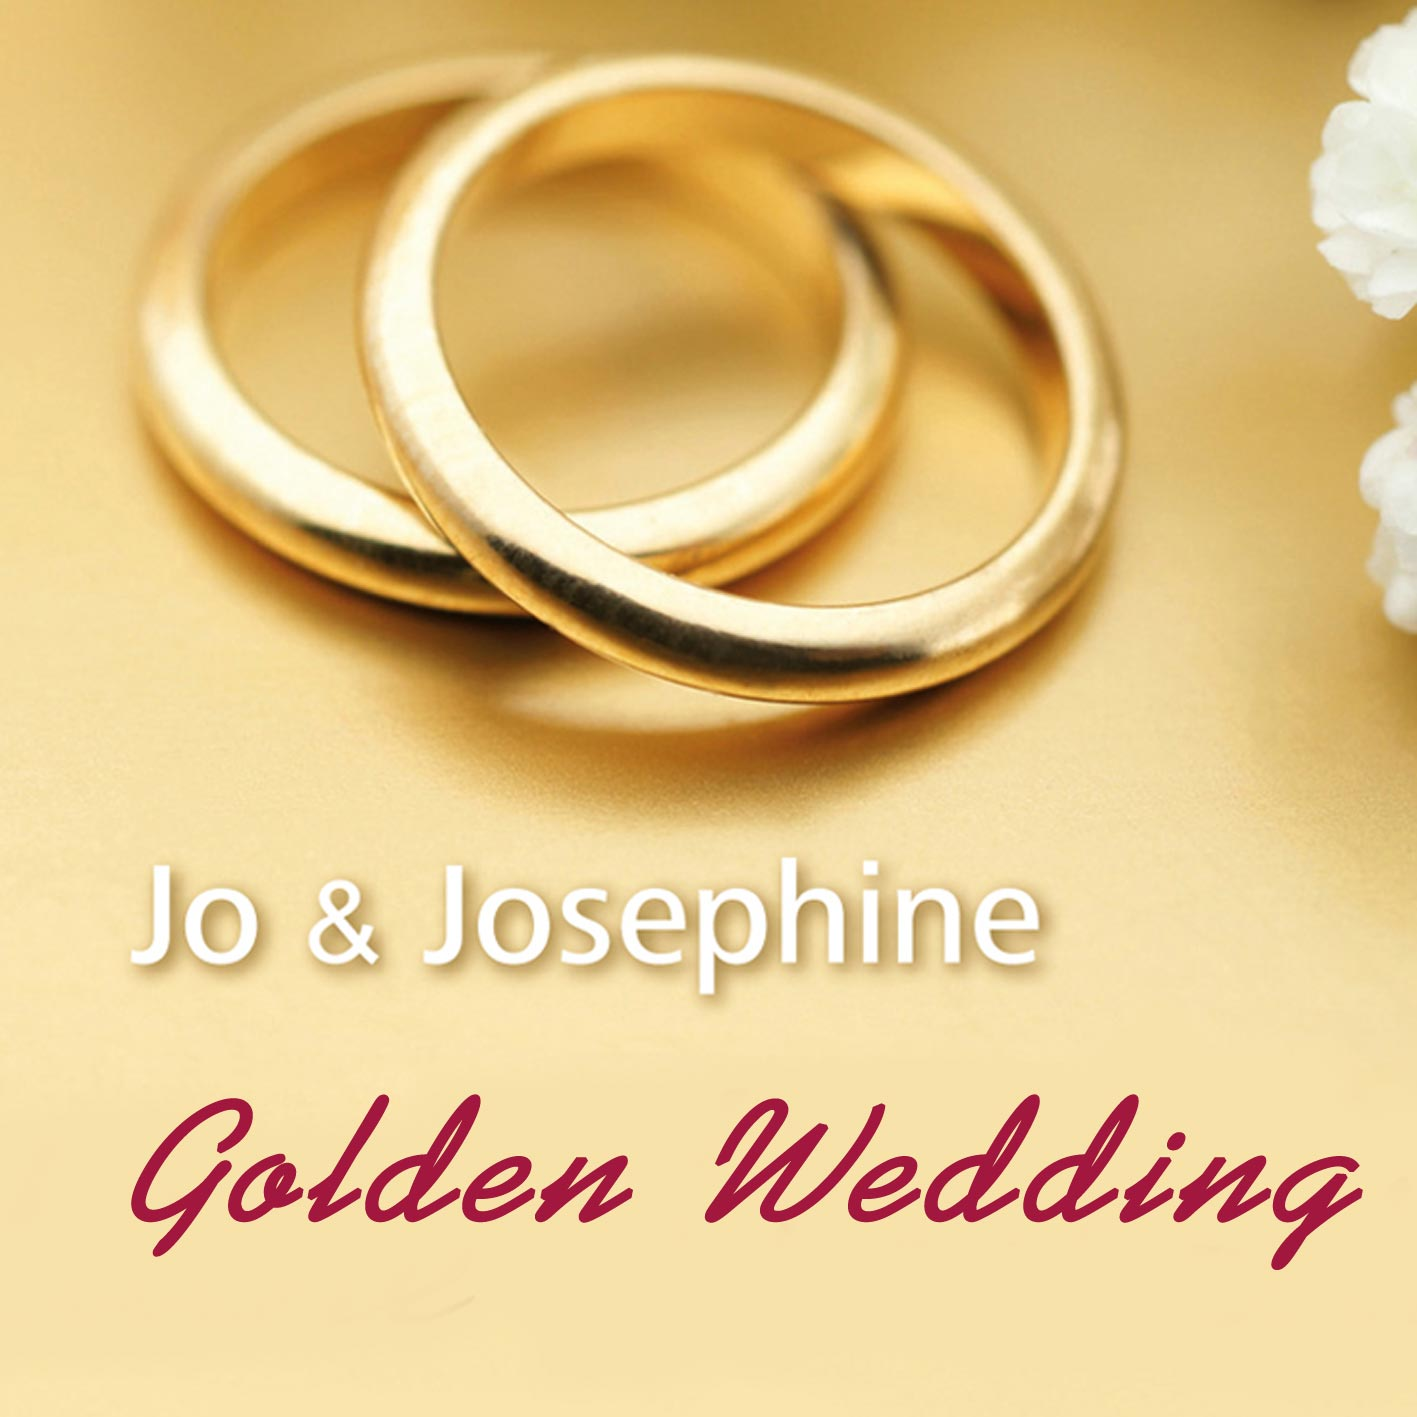 Cover Golden Wedding Song mit goldenen Ringen